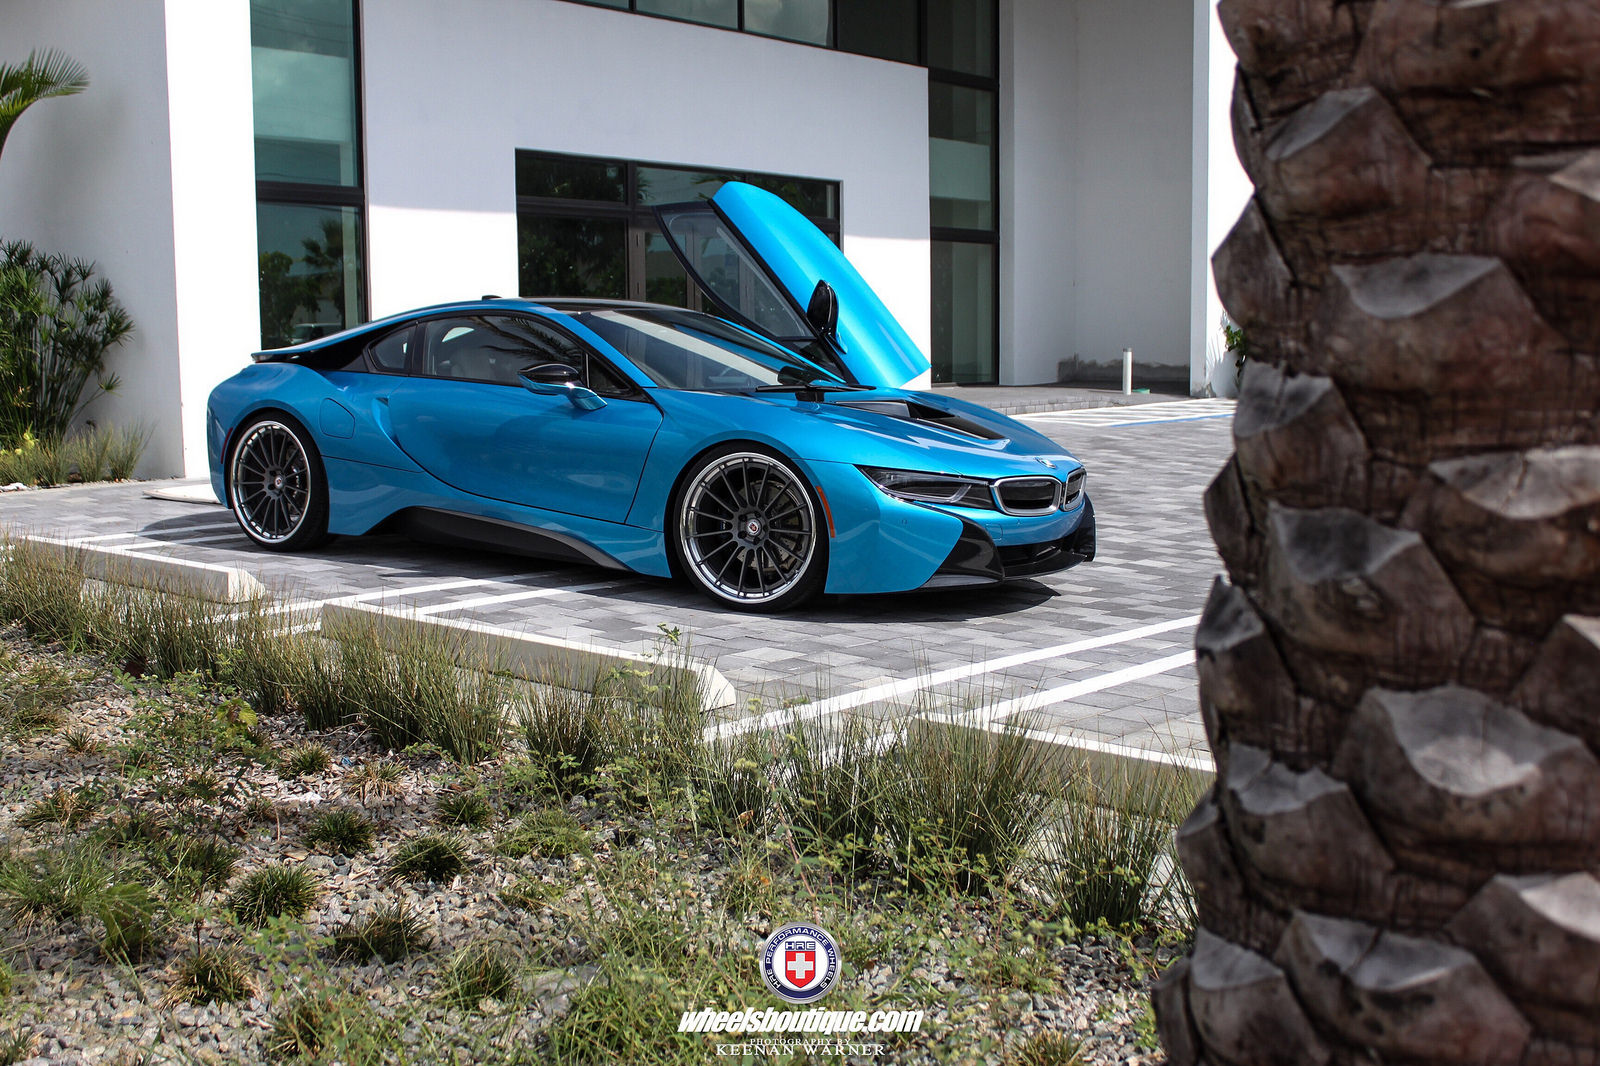 Photoshoot A Bmw I8 Equipped With Hre Rs103 Wheels